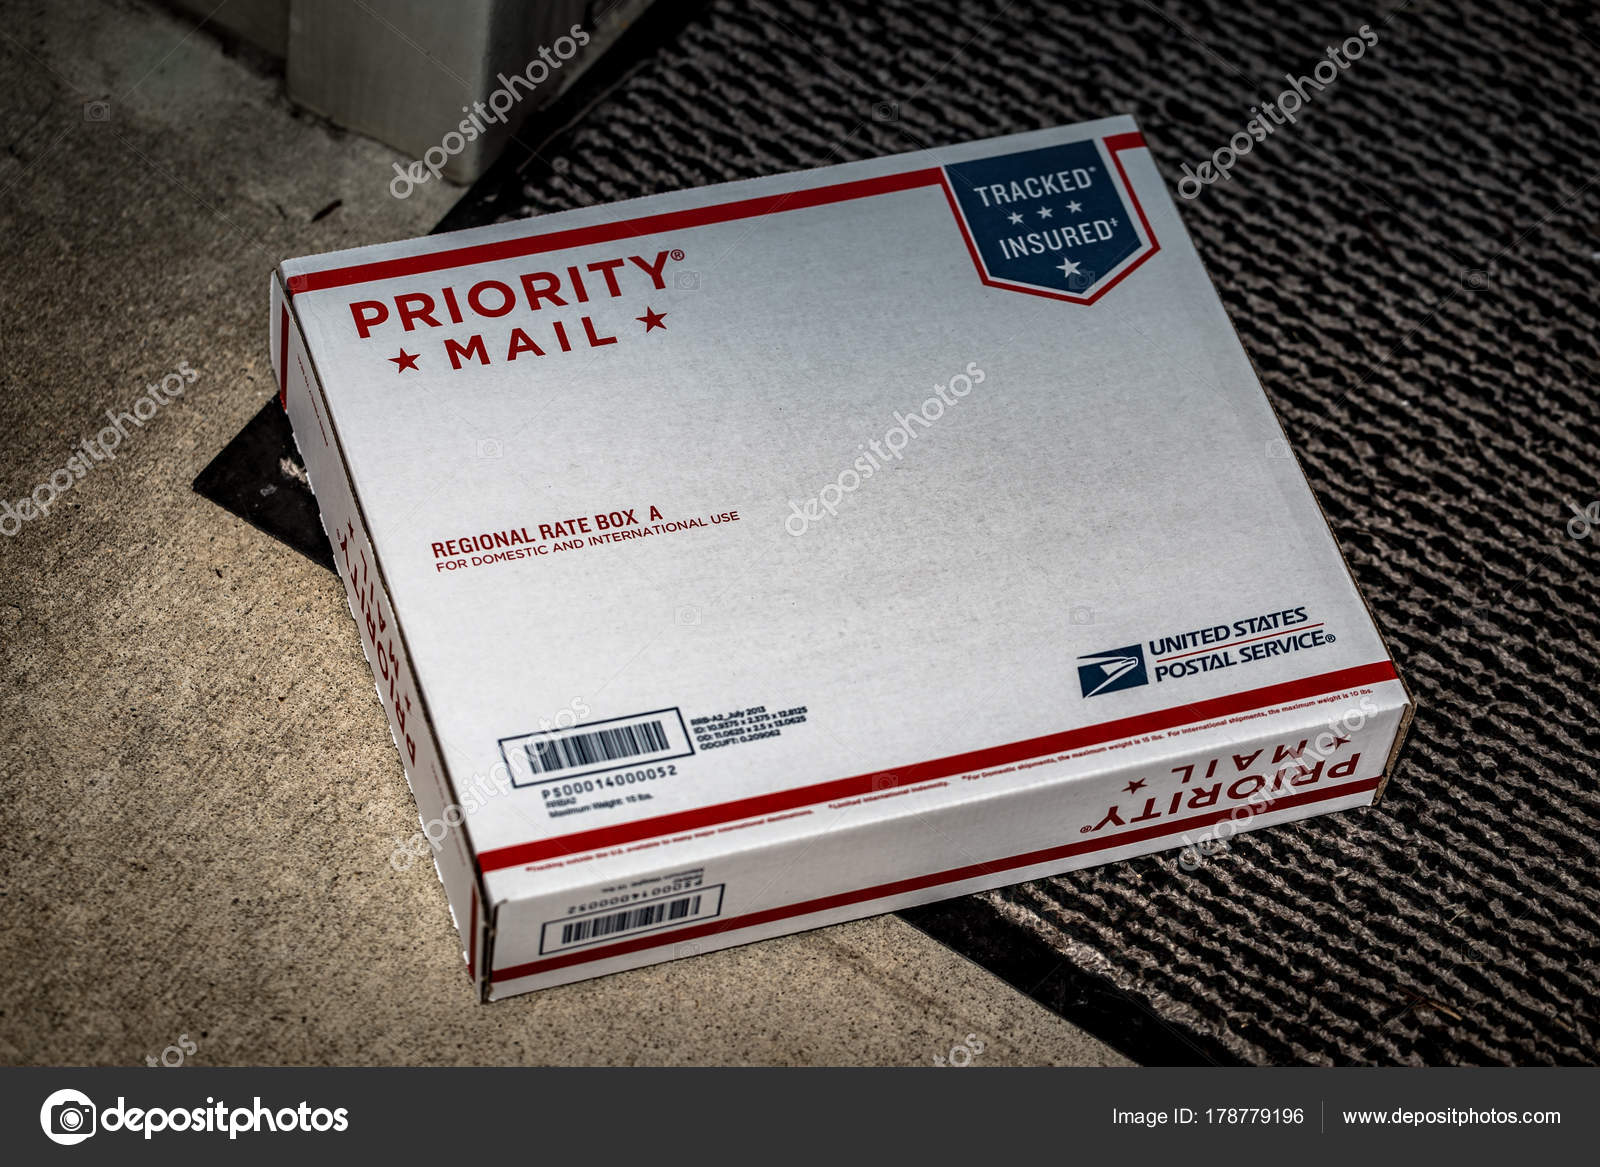 usps priority mail regional rate box stock editorial photo georgesheldon 178779196. Black Bedroom Furniture Sets. Home Design Ideas